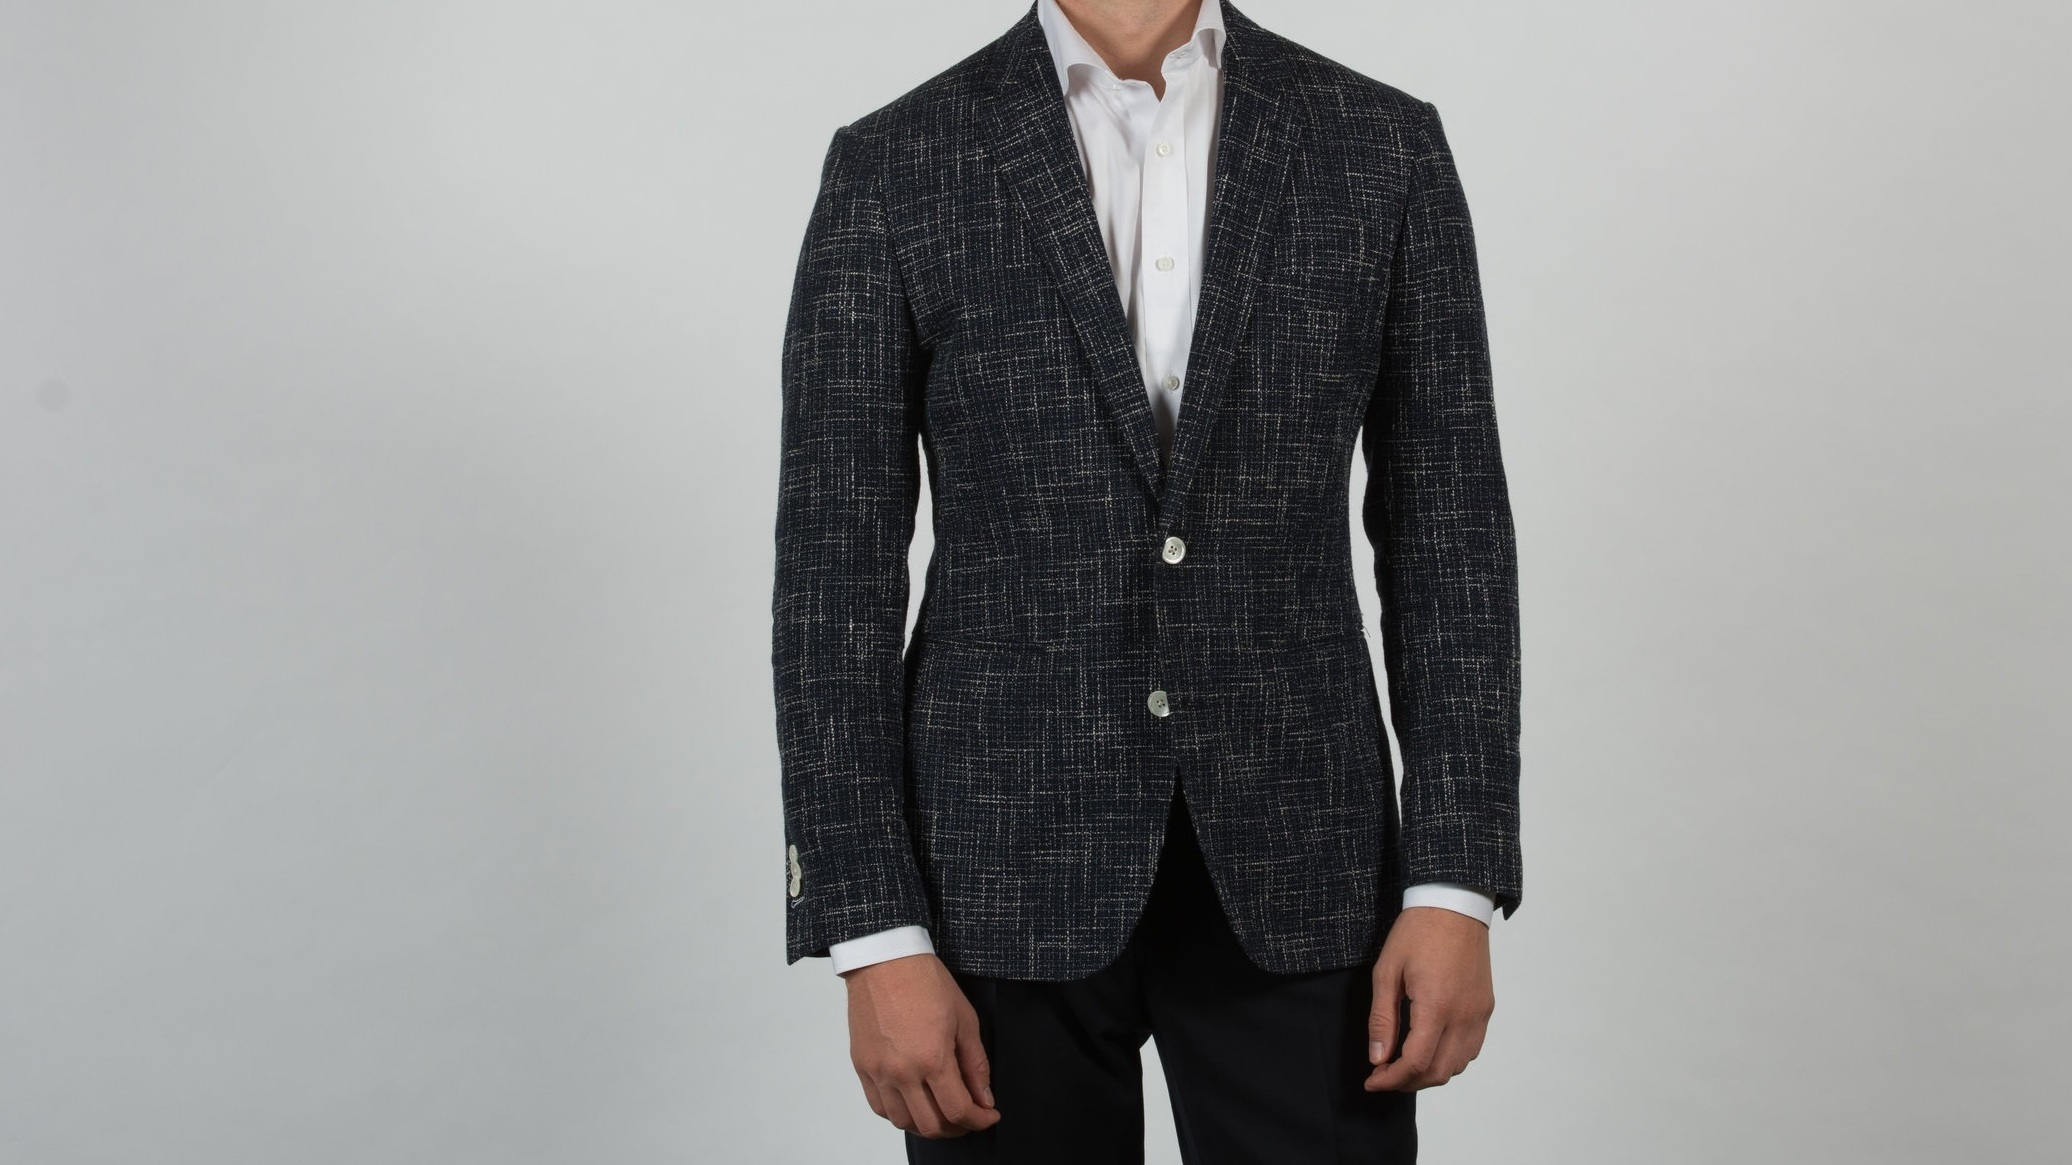 Building your wardrobe is easier than ever